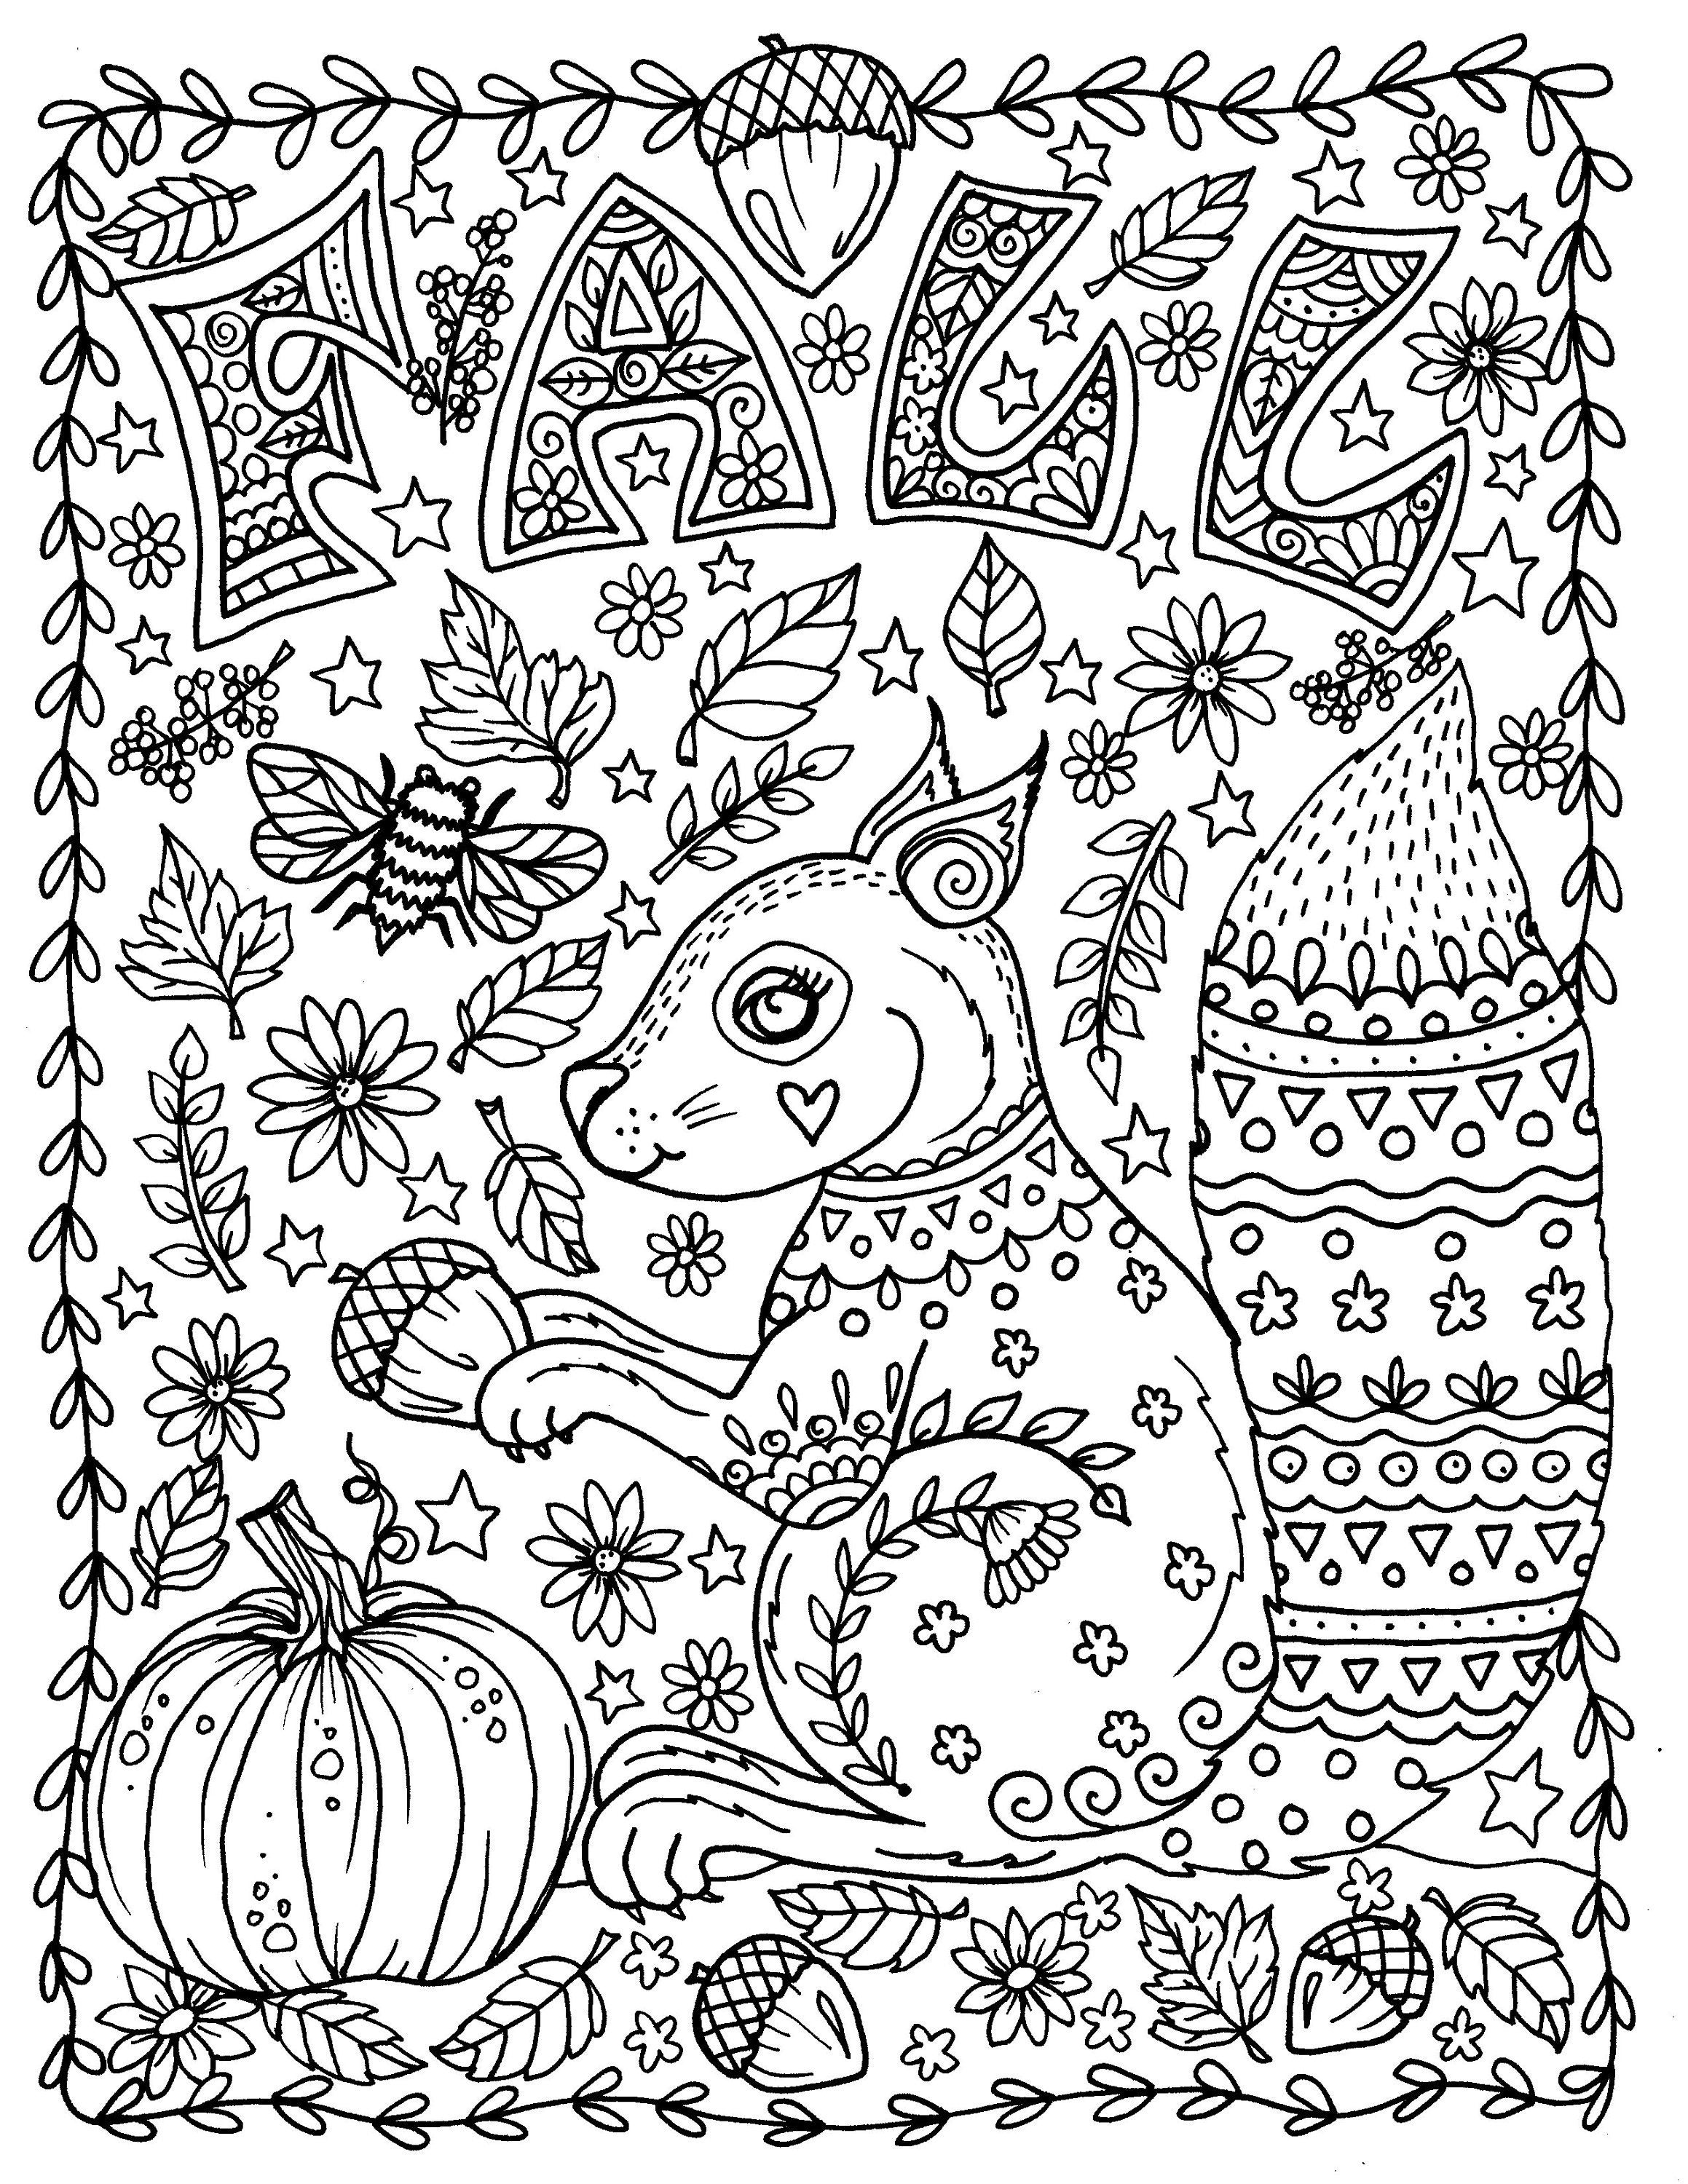 FALL Coloring Page Instant Download Squirrel With Acorns